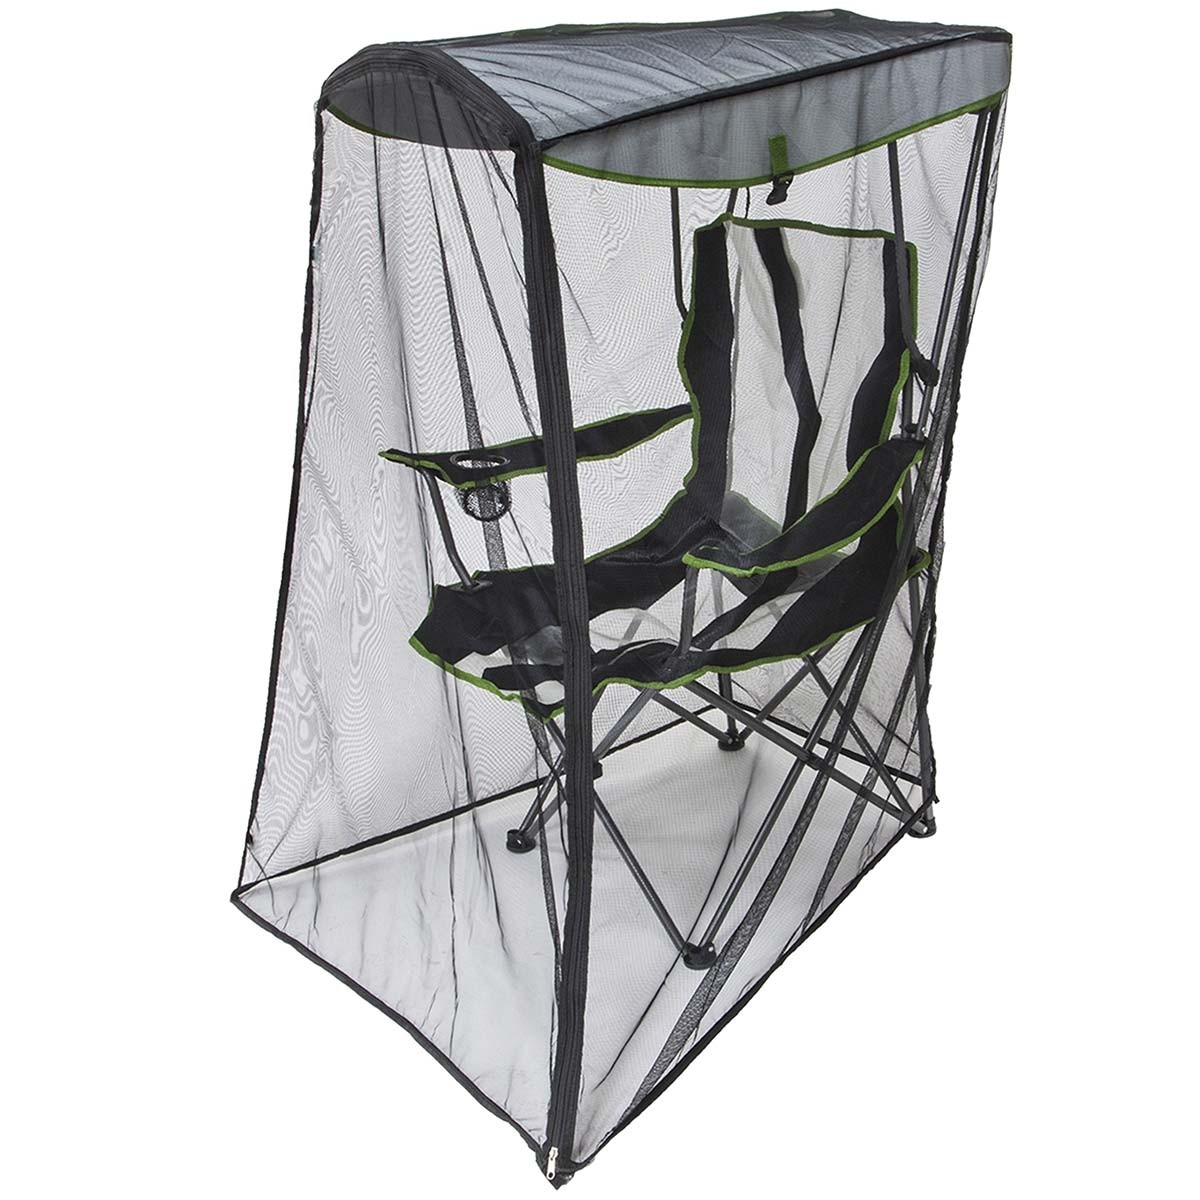 baseball folding tent chair inflatable pool with drinks holder canopy and addthis sharing buttons sc 1 st anthem sports